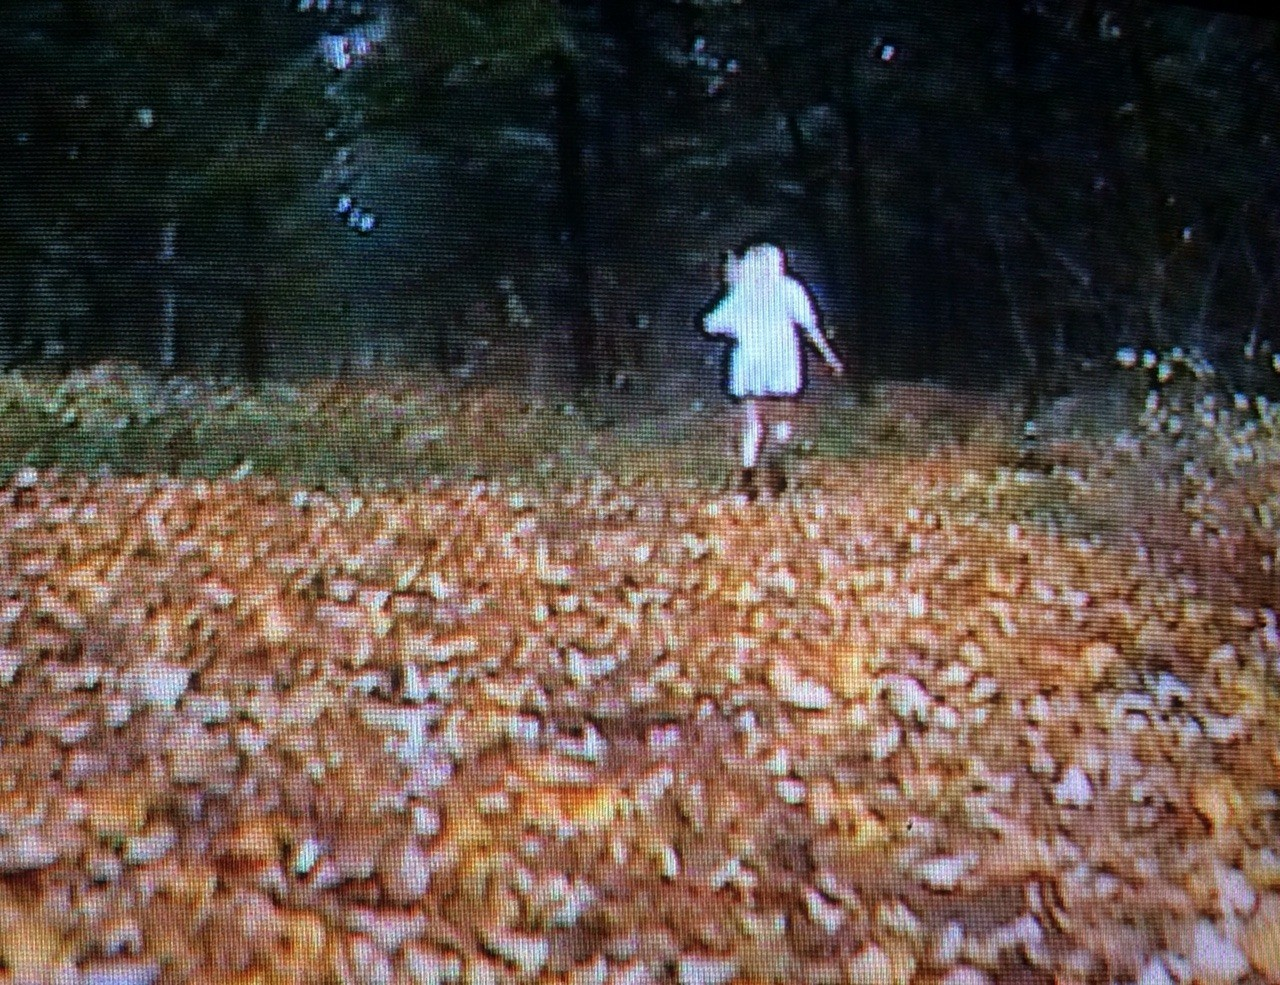 80s, 90s, and autumn image